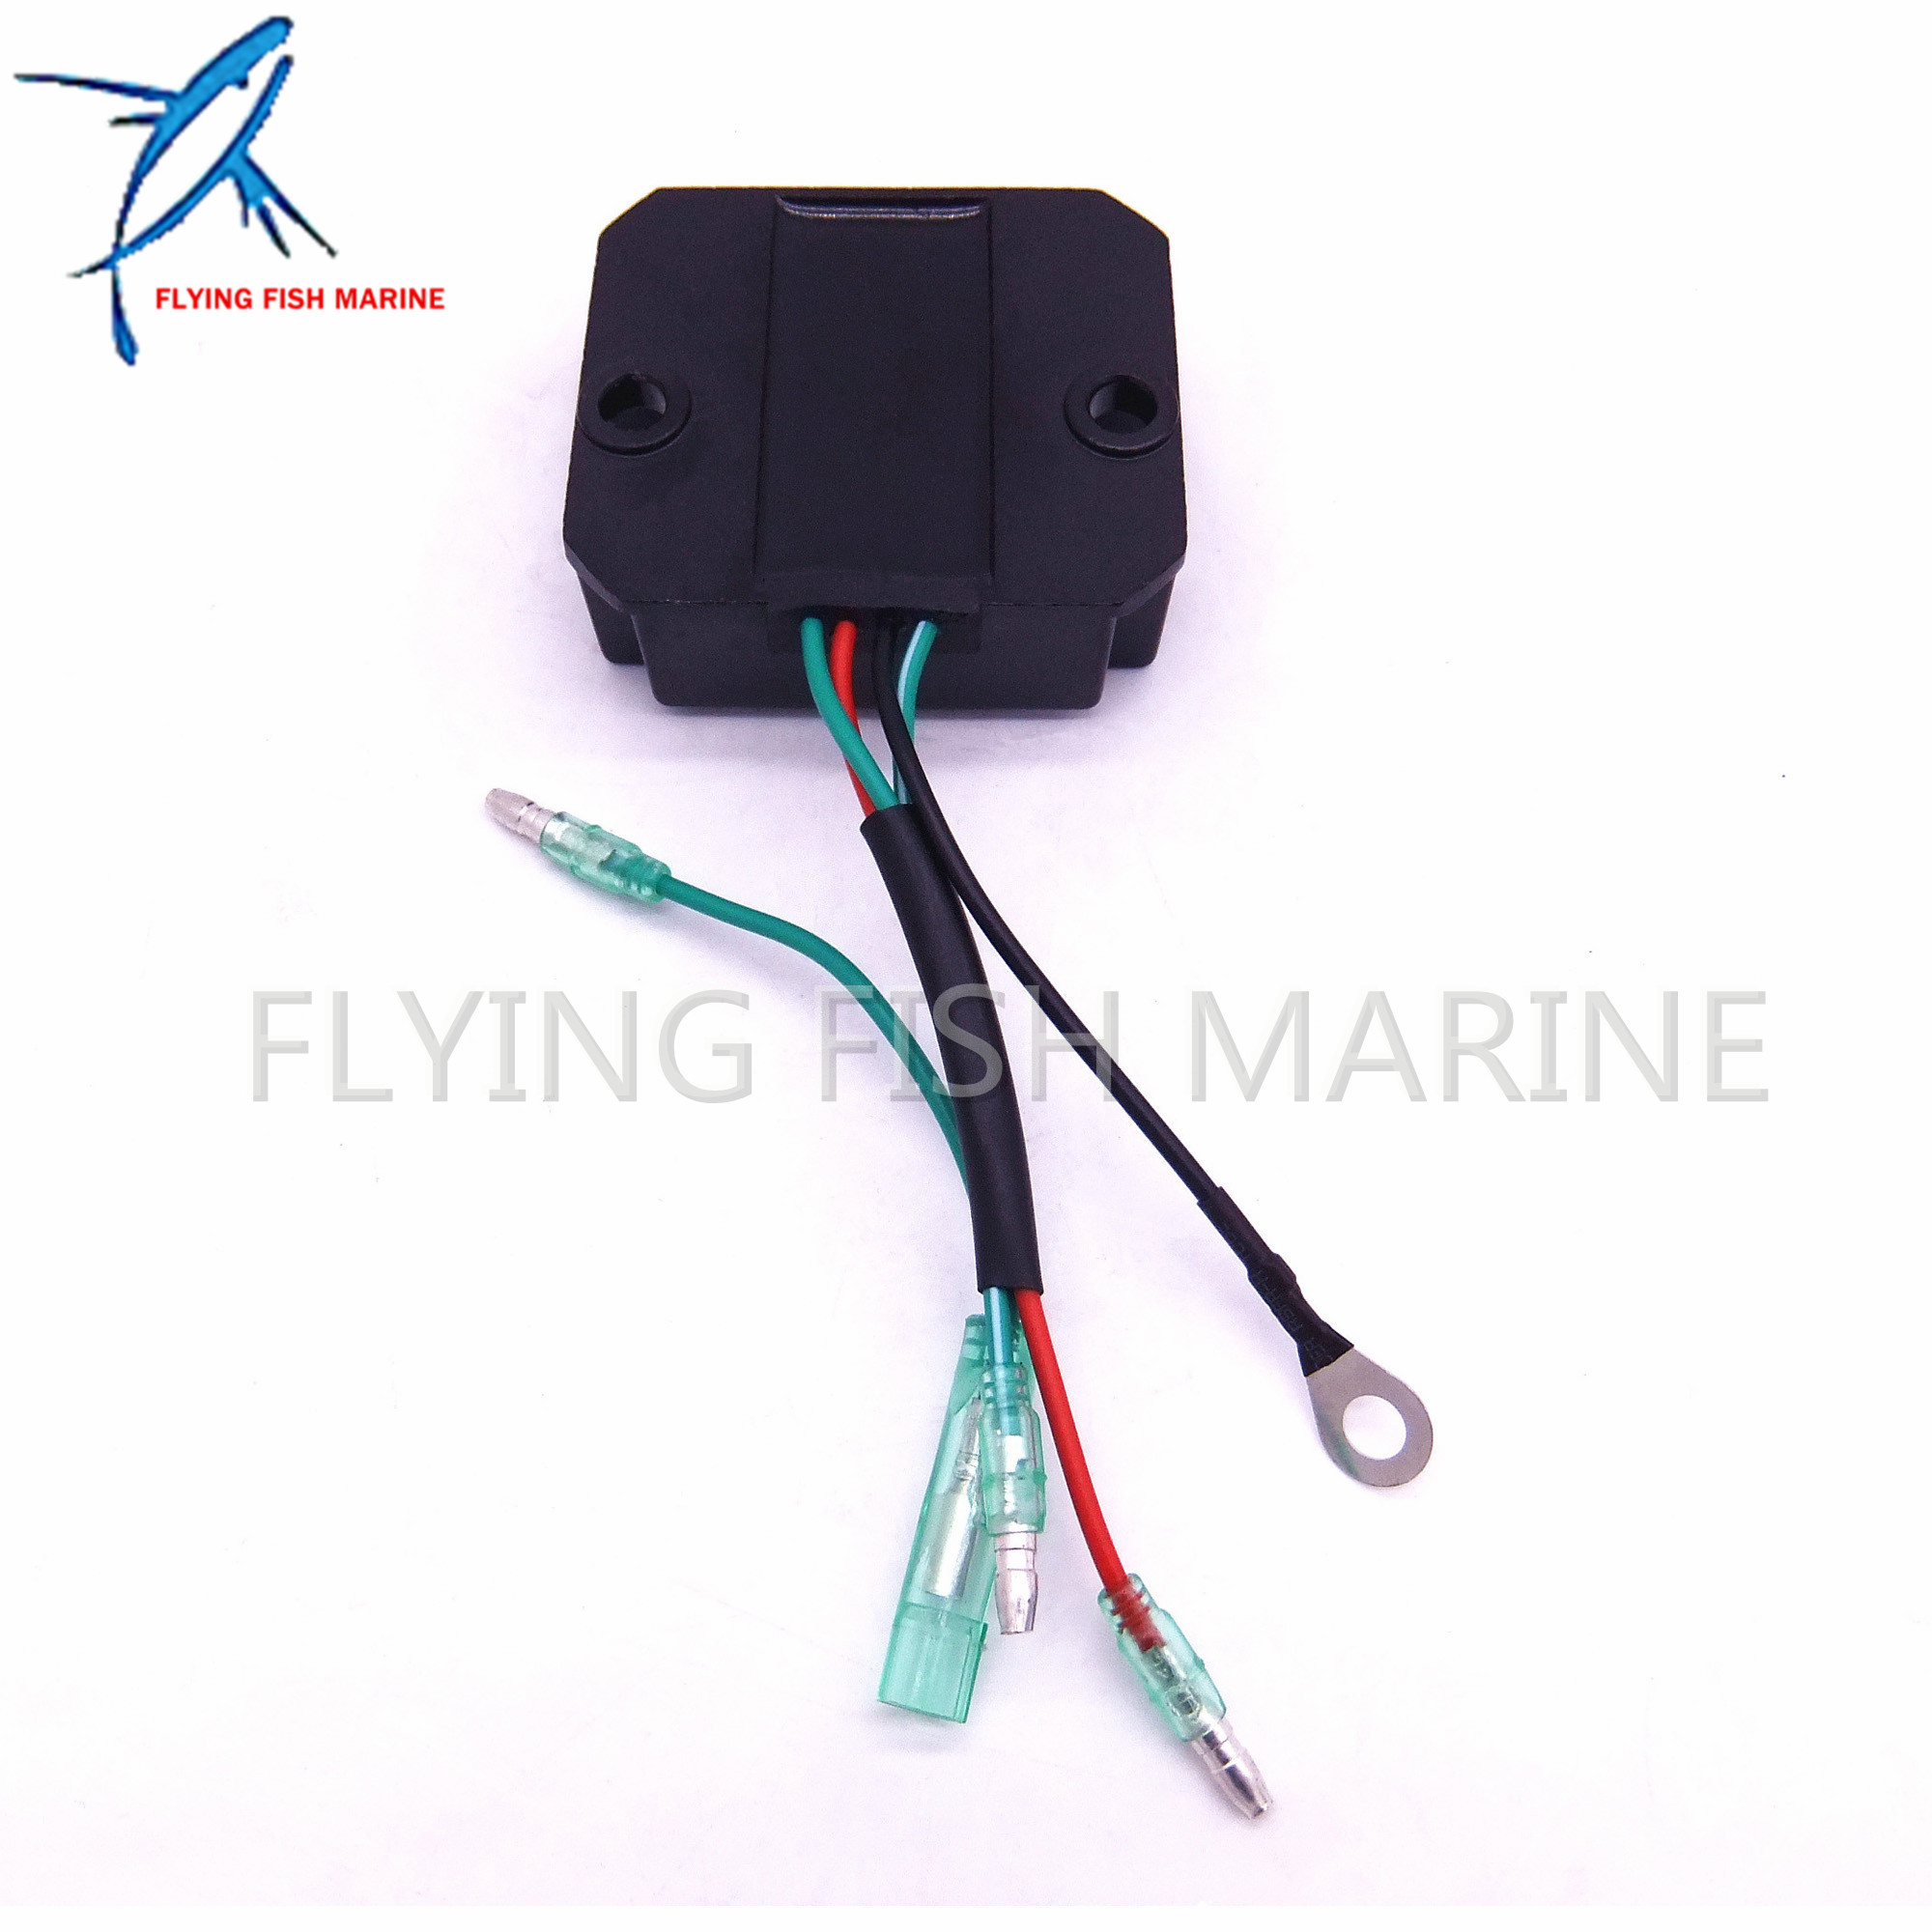 6ah 81960 00 boat motor rectifier & regulator for yamaha 4 stroke f15 f20  outboard engine-in boat engine from automobiles & motorcycles on  aliexpress com